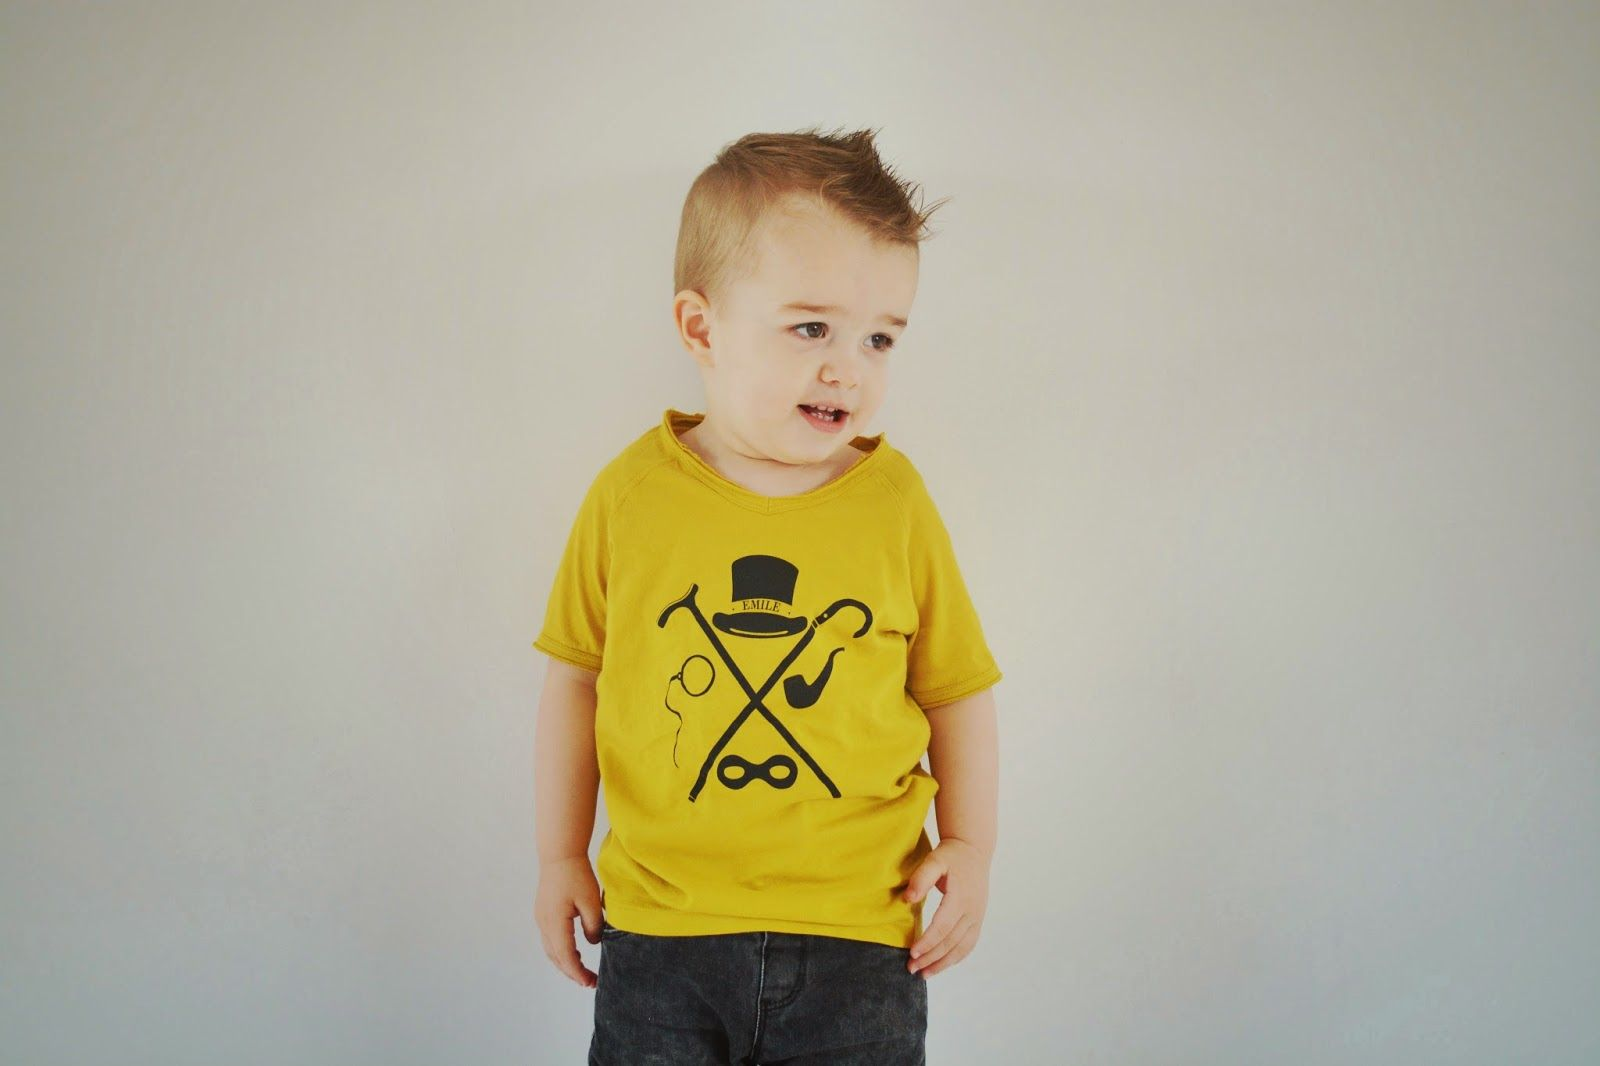 Saved with style: Mini fashion | Noah's outfit #4: yellow for cool boys only